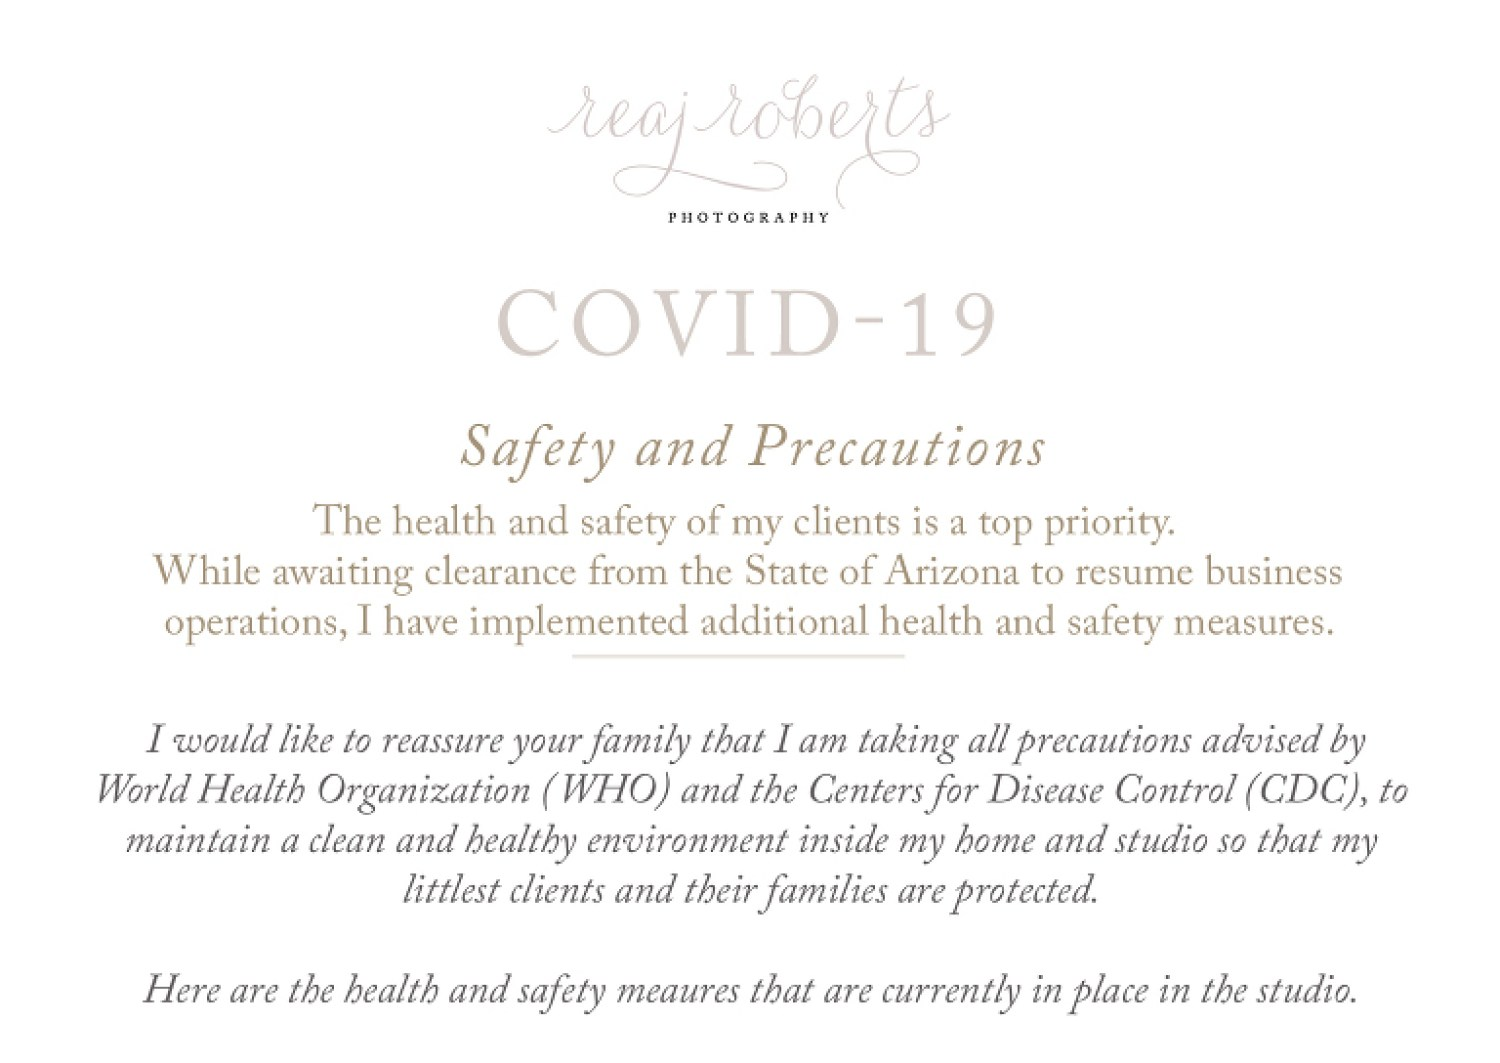 Safety and Precautions